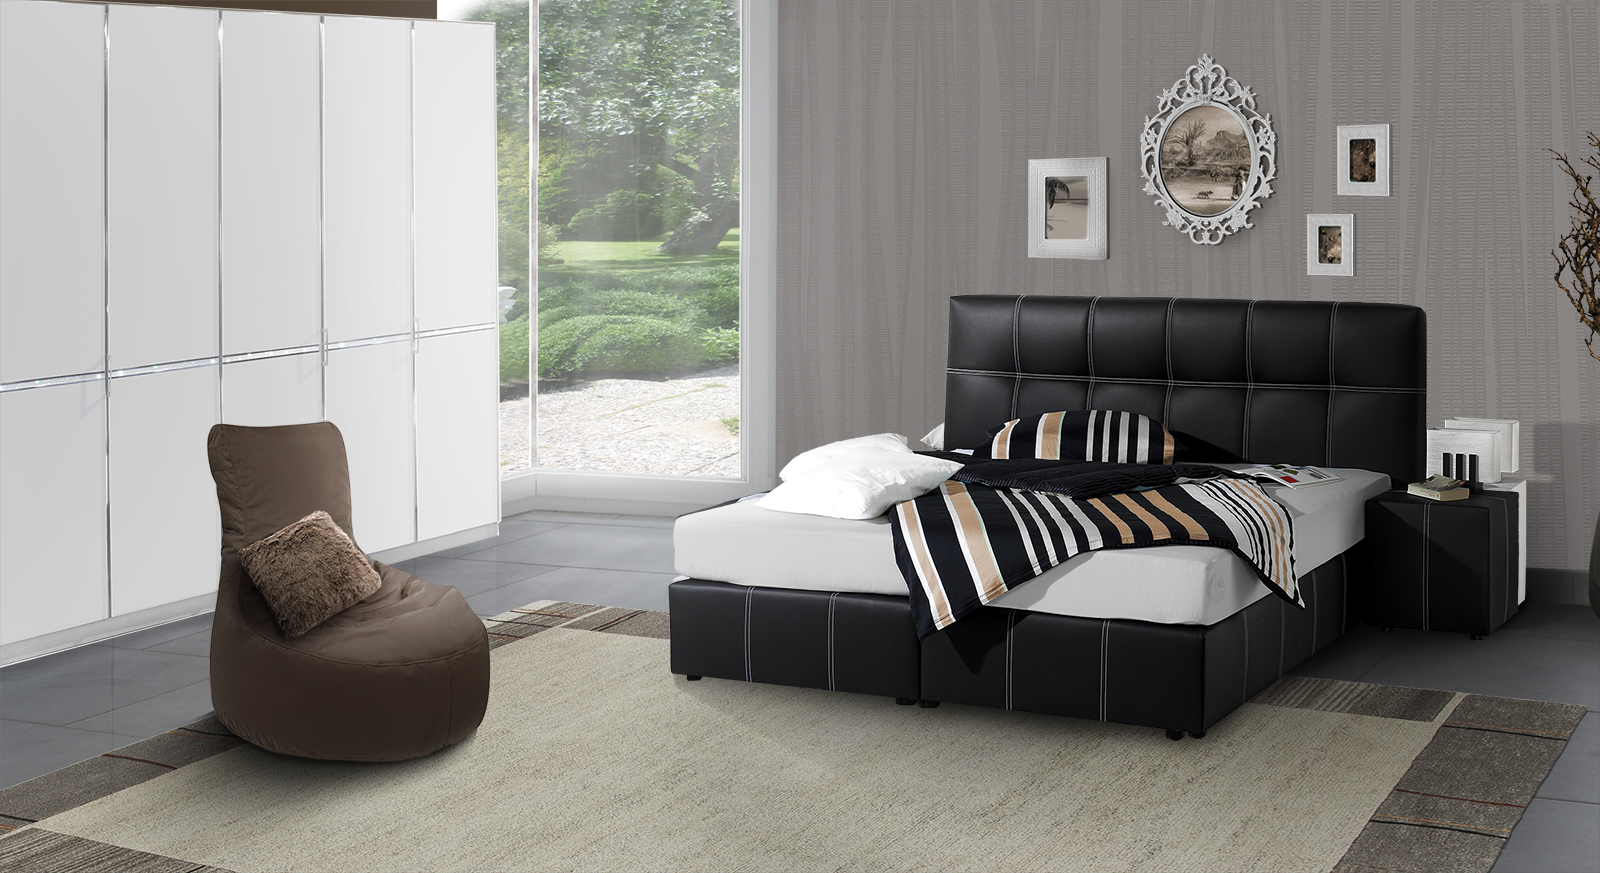 wandgestaltung wohnzimmer schwarz wei e m bel. Black Bedroom Furniture Sets. Home Design Ideas